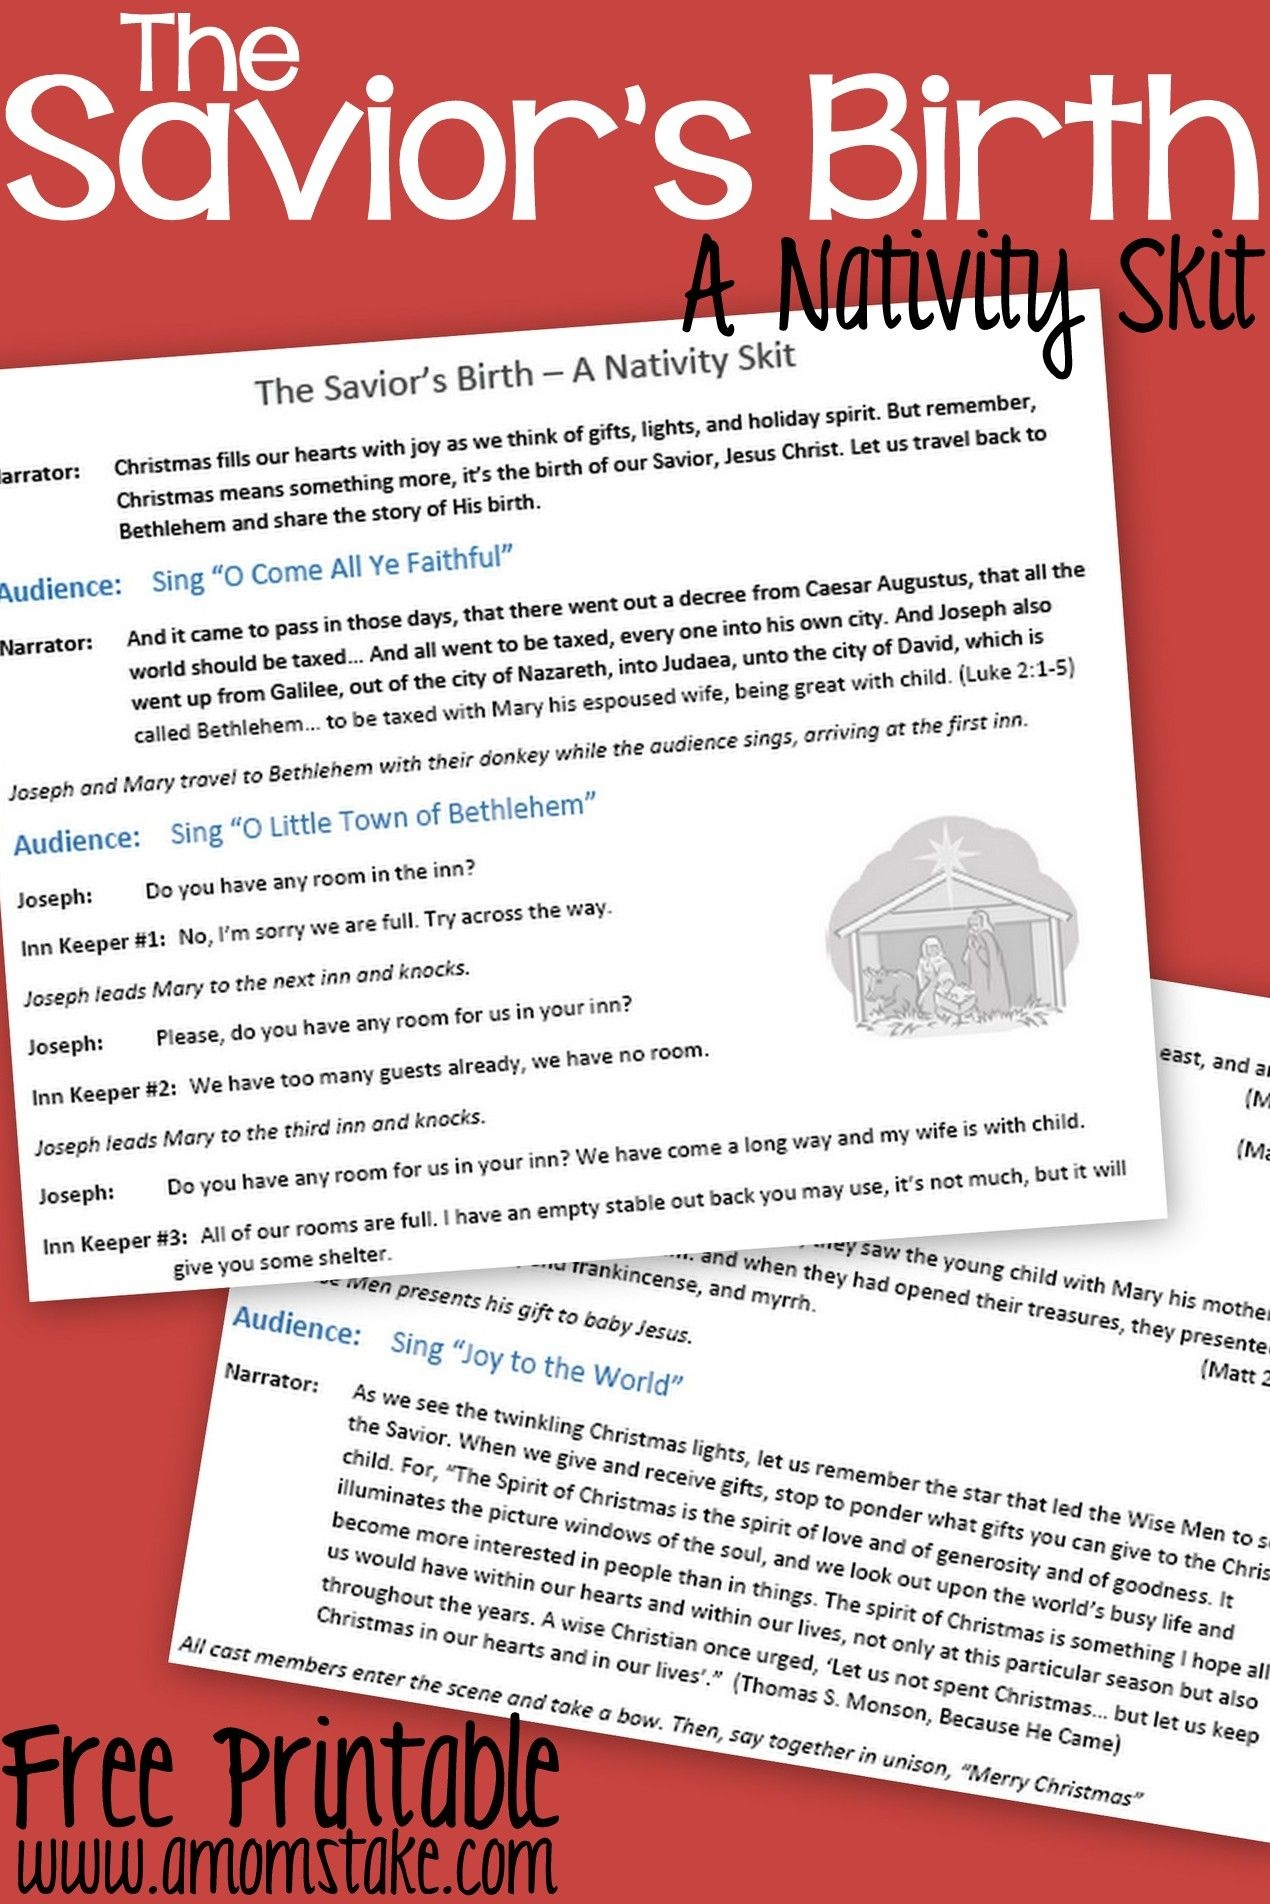 Free Printable Nativity Skit To Act Out The Birth Of The Savior - Free Printable Christmas Plays For Sunday School